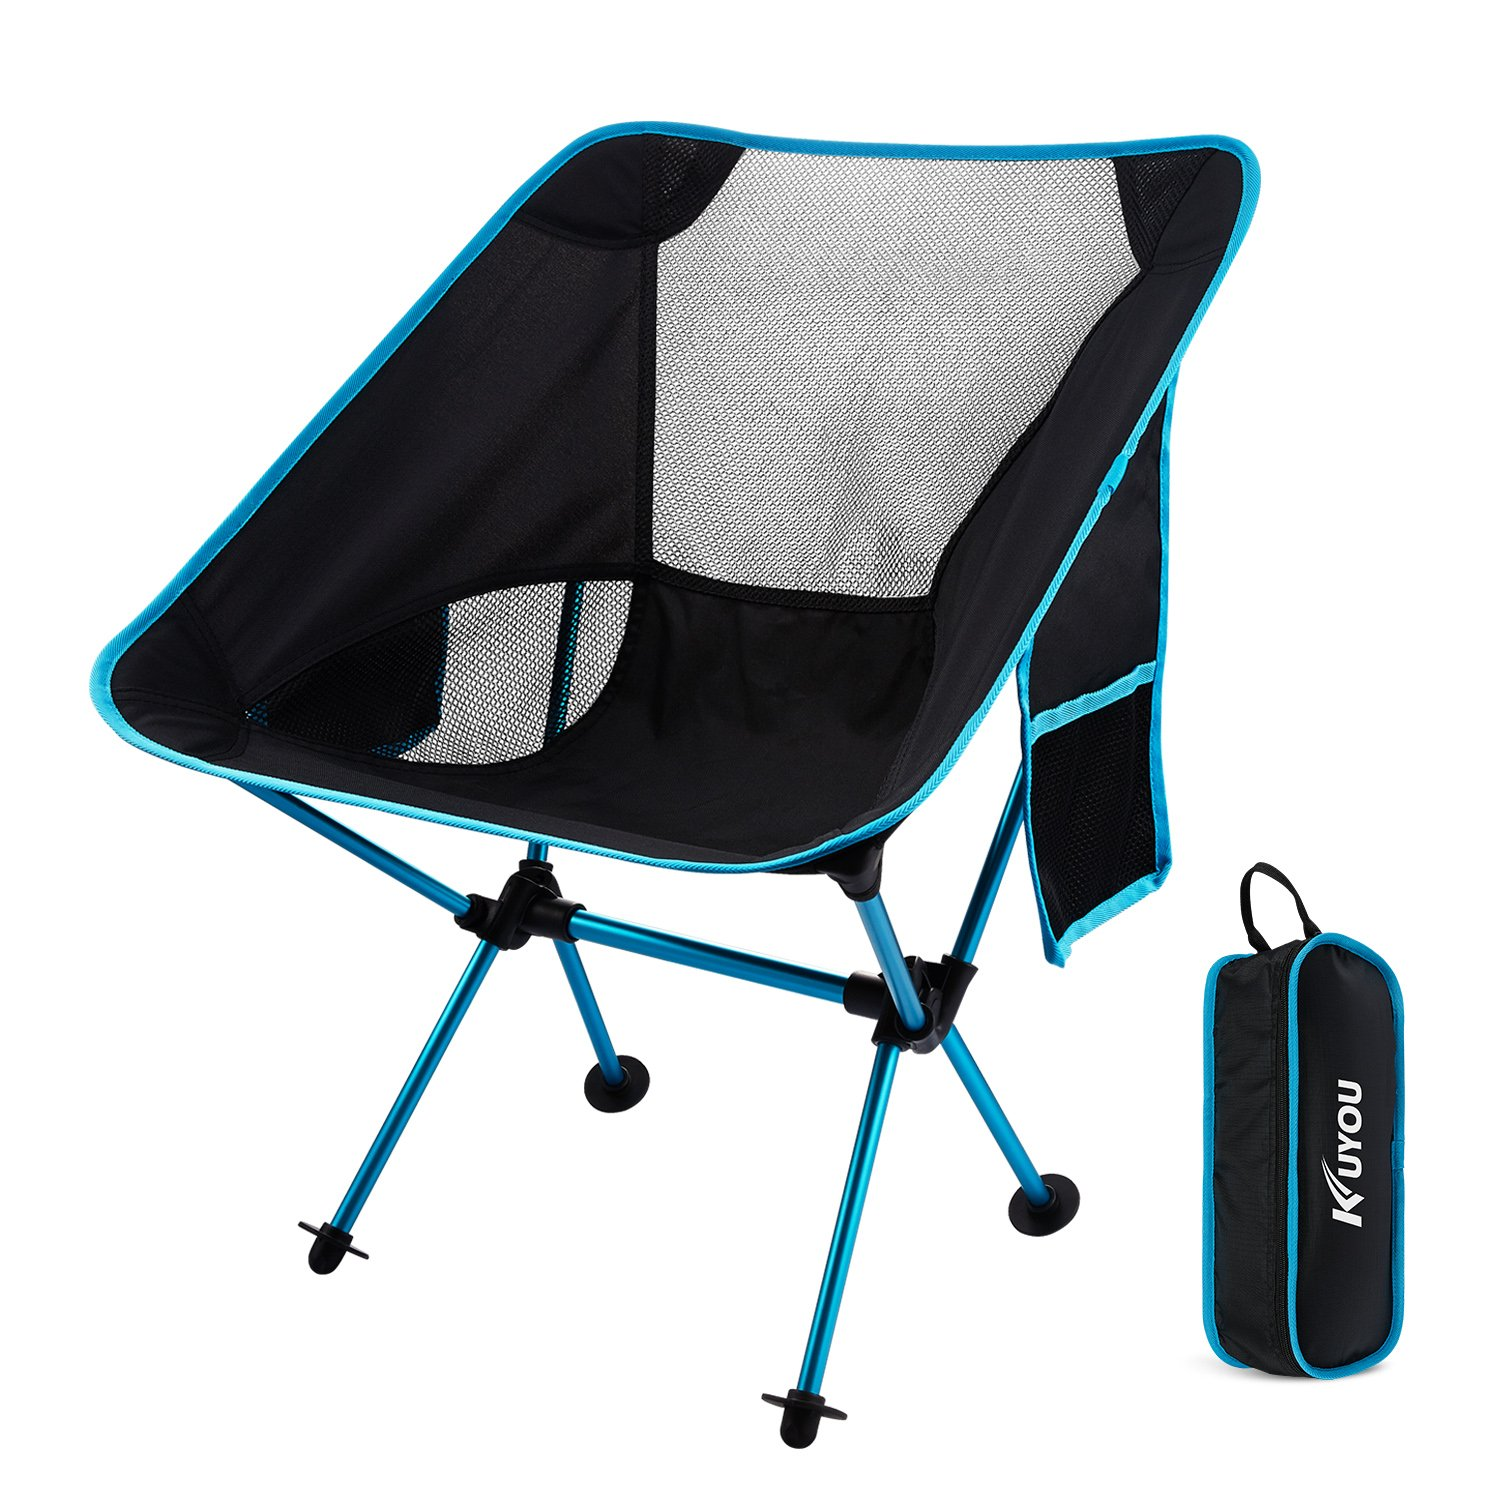 Outdoor Fold Up Chairs,Compact Folding Chairs Ultralight Portable Chair  With Carry Bag For Hiker/ Camping/ Beach /Fishing /Outdoor Picnic